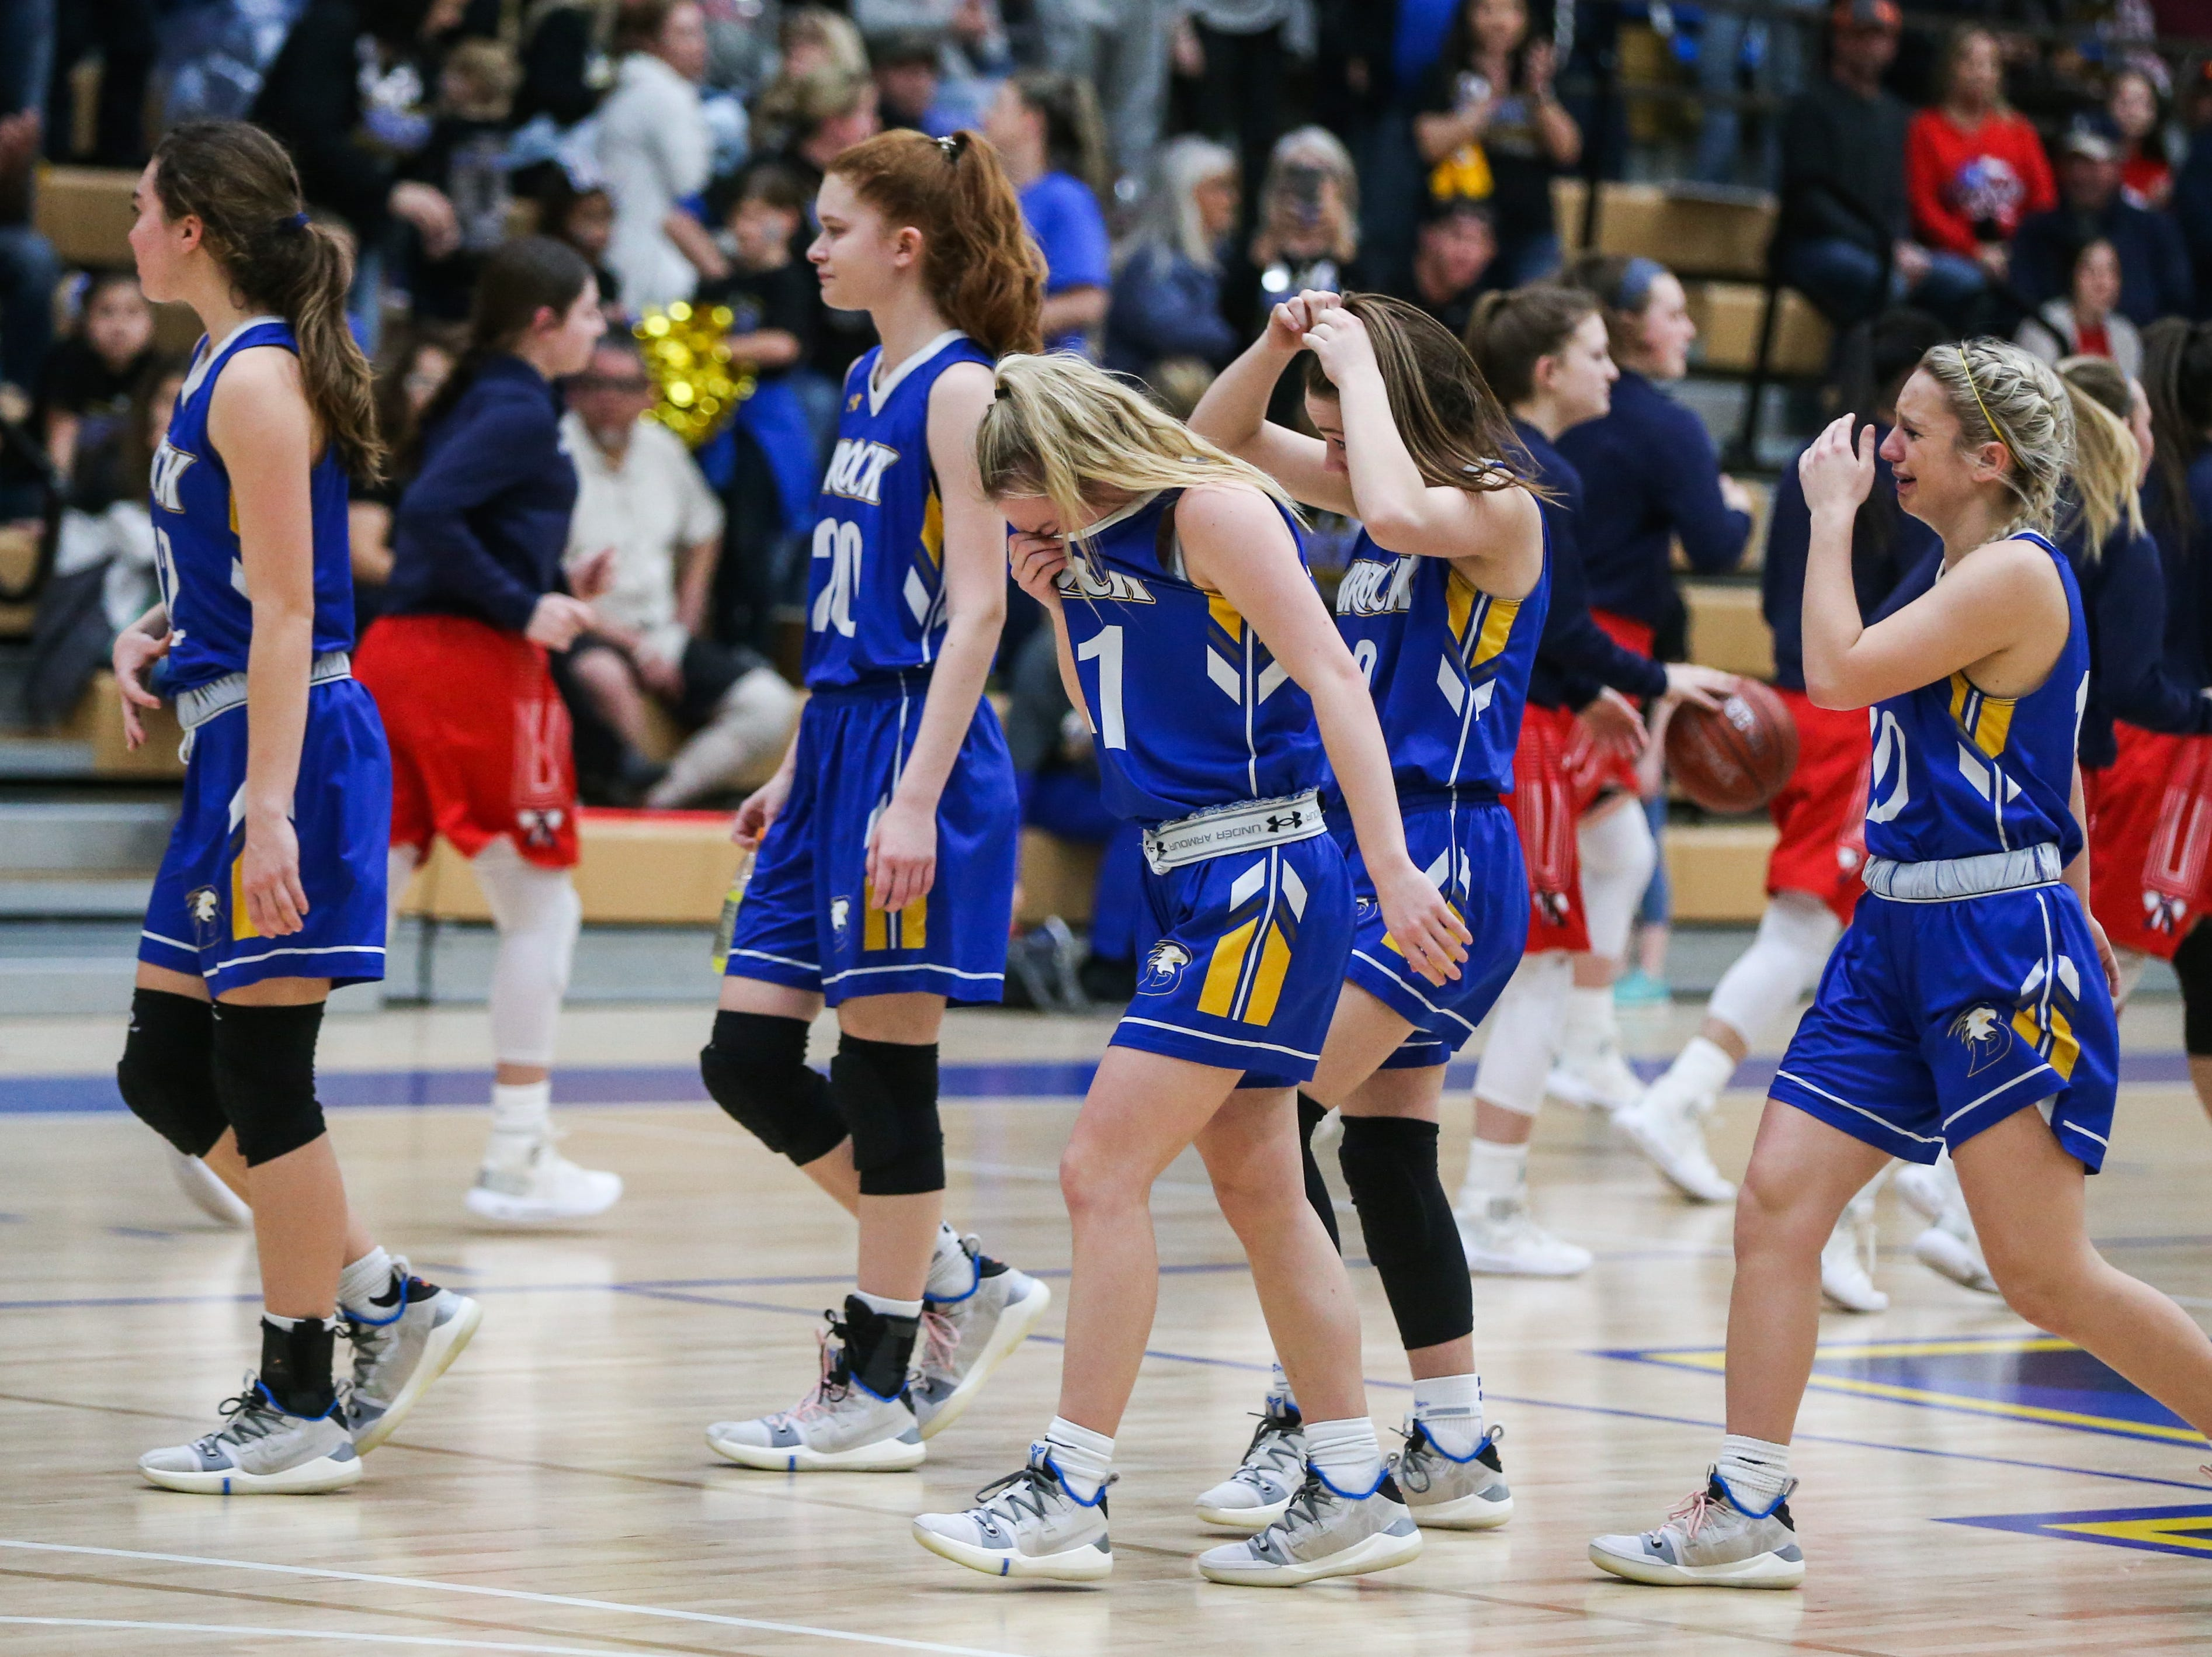 Brock players leave the court after during the I-3A regional tournament against Wall Friday, Feb. 22, 2019, at Wayland Baptist University in Plainview.